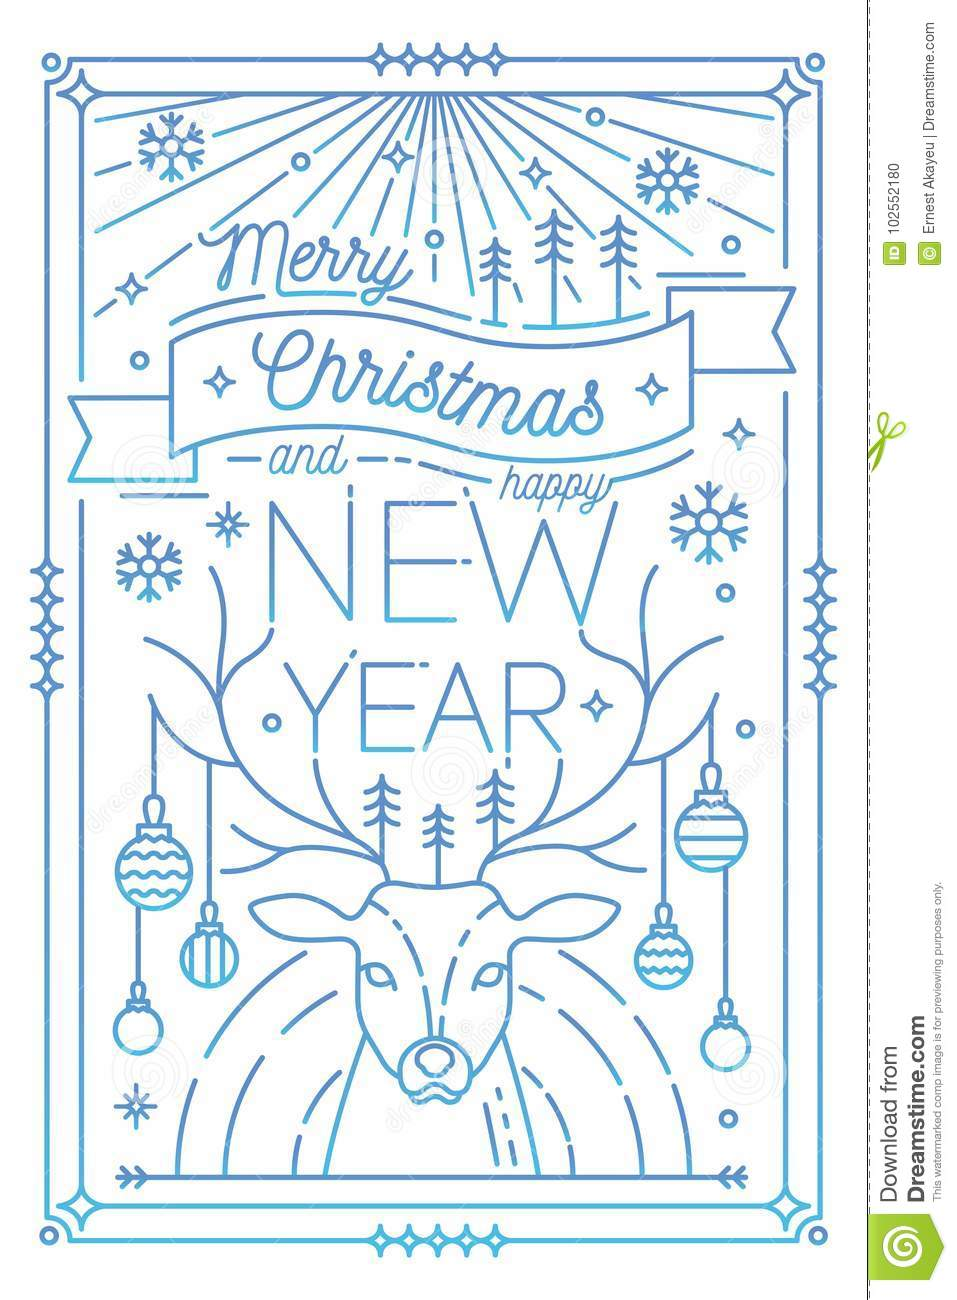 Merry Christmas And Happy New Year Greeting Card Template With ...